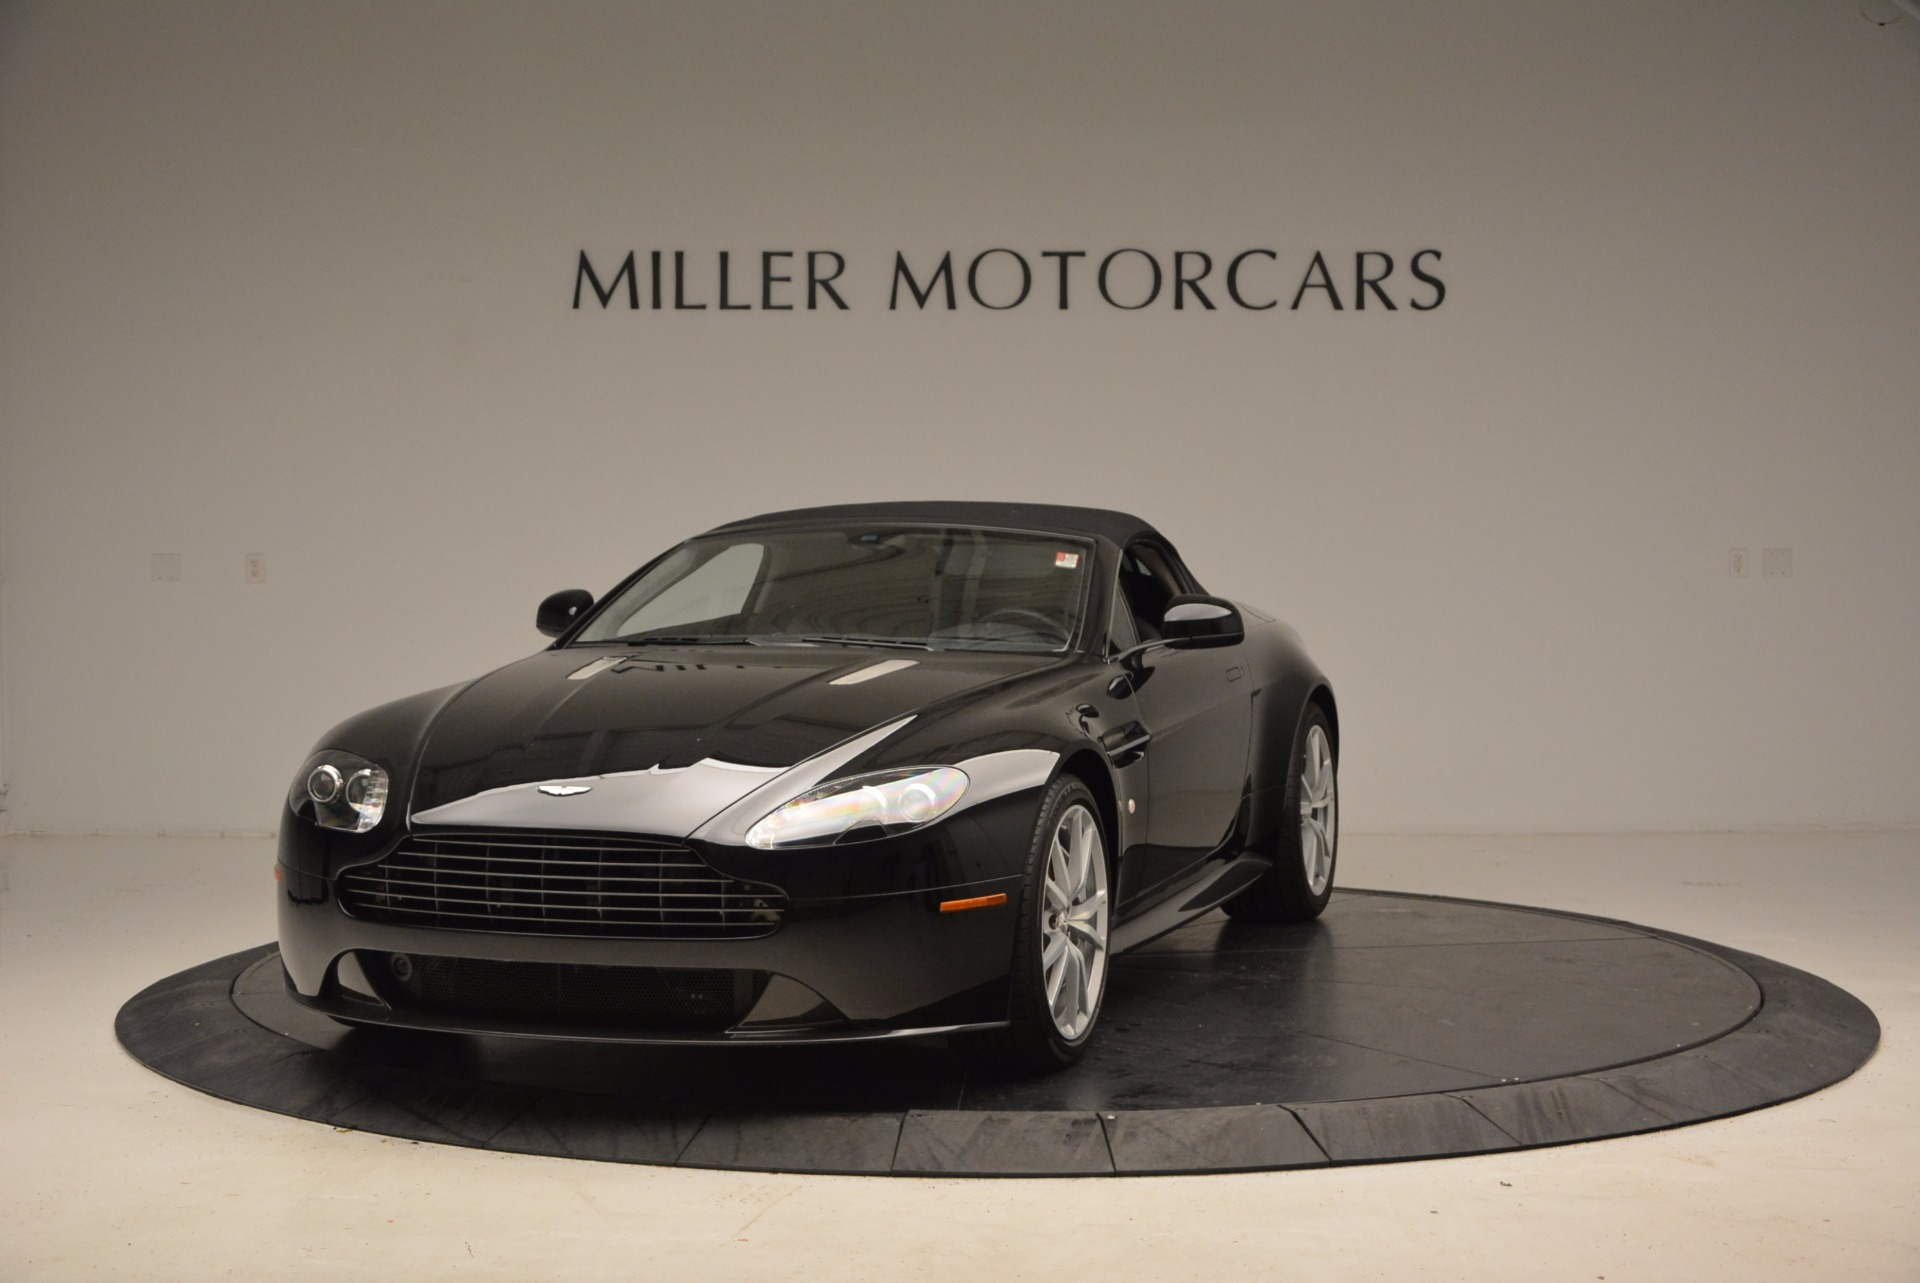 New 2016 Aston Martin V8 Vantage Roadster For Sale In Greenwich, CT 1546_p13